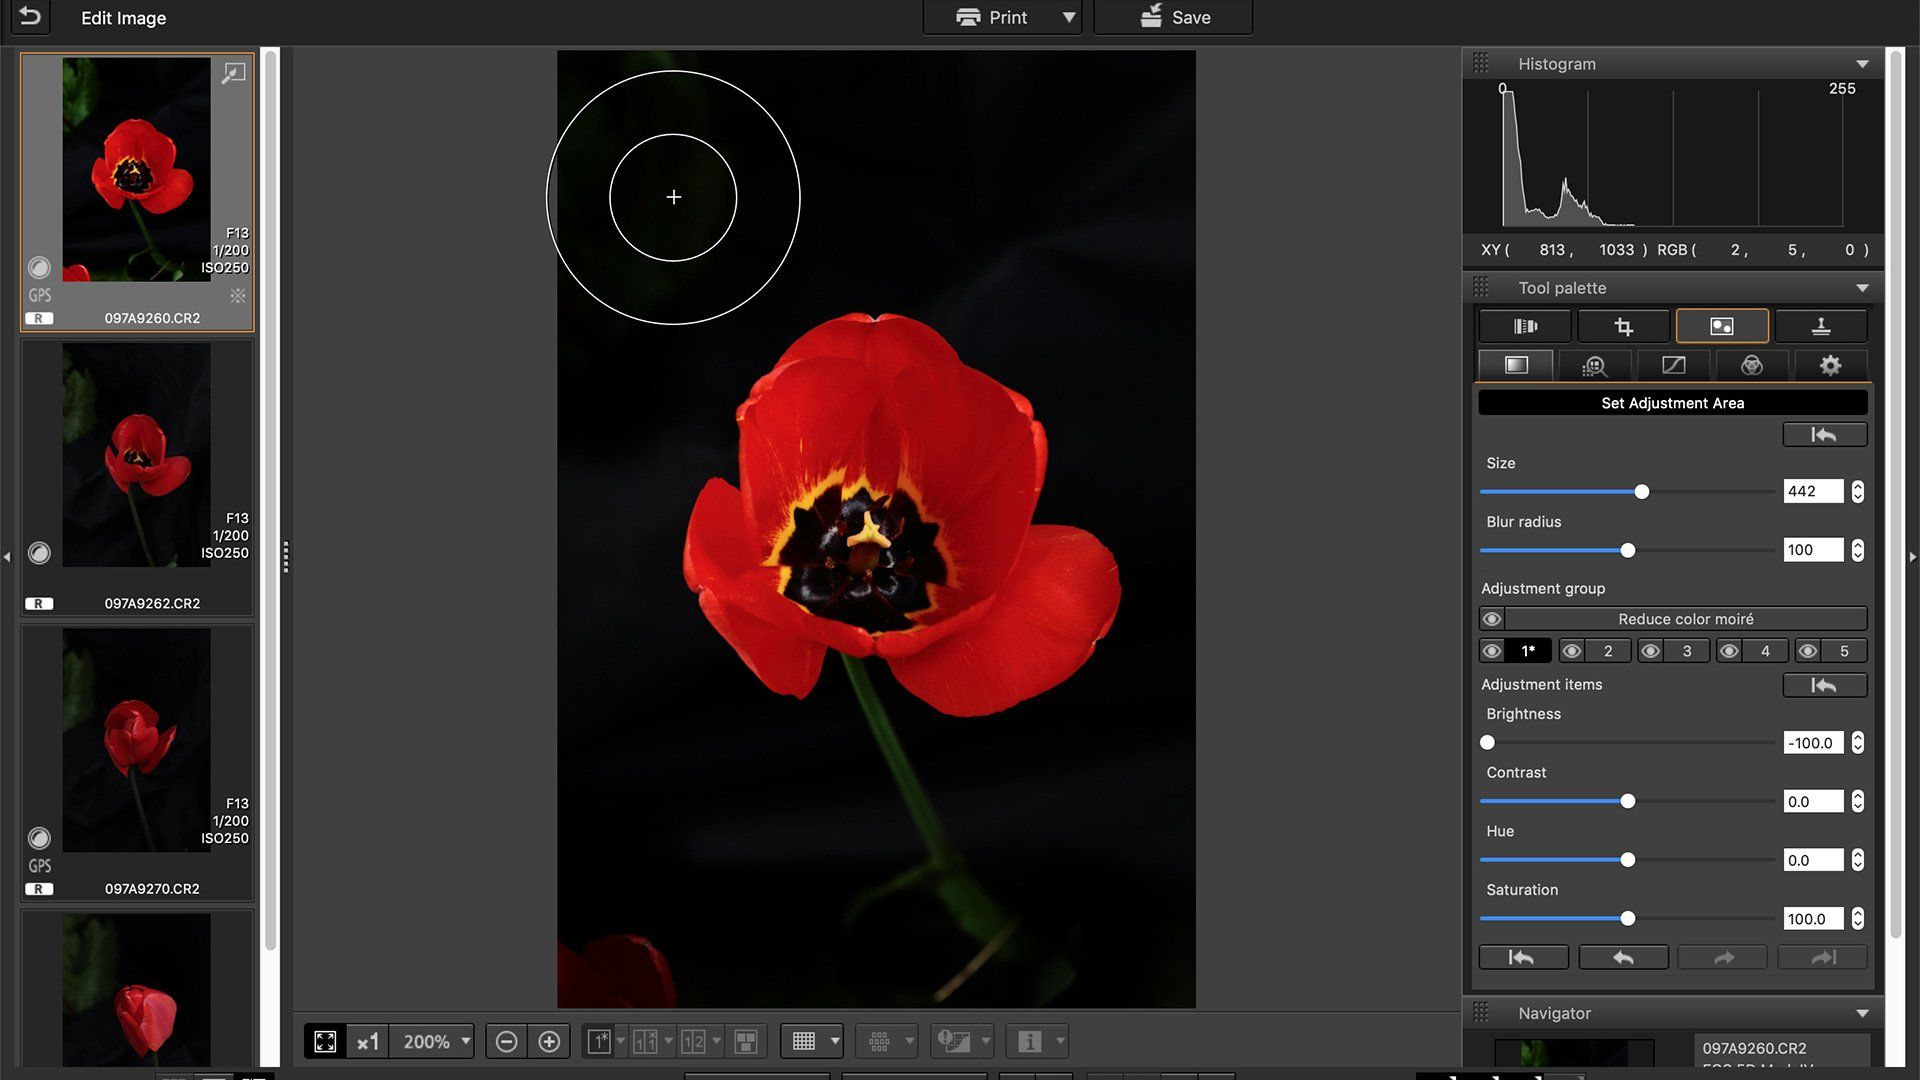 An image of a tulip is tweaked in Canon's Digital Photo Professional imaging software.